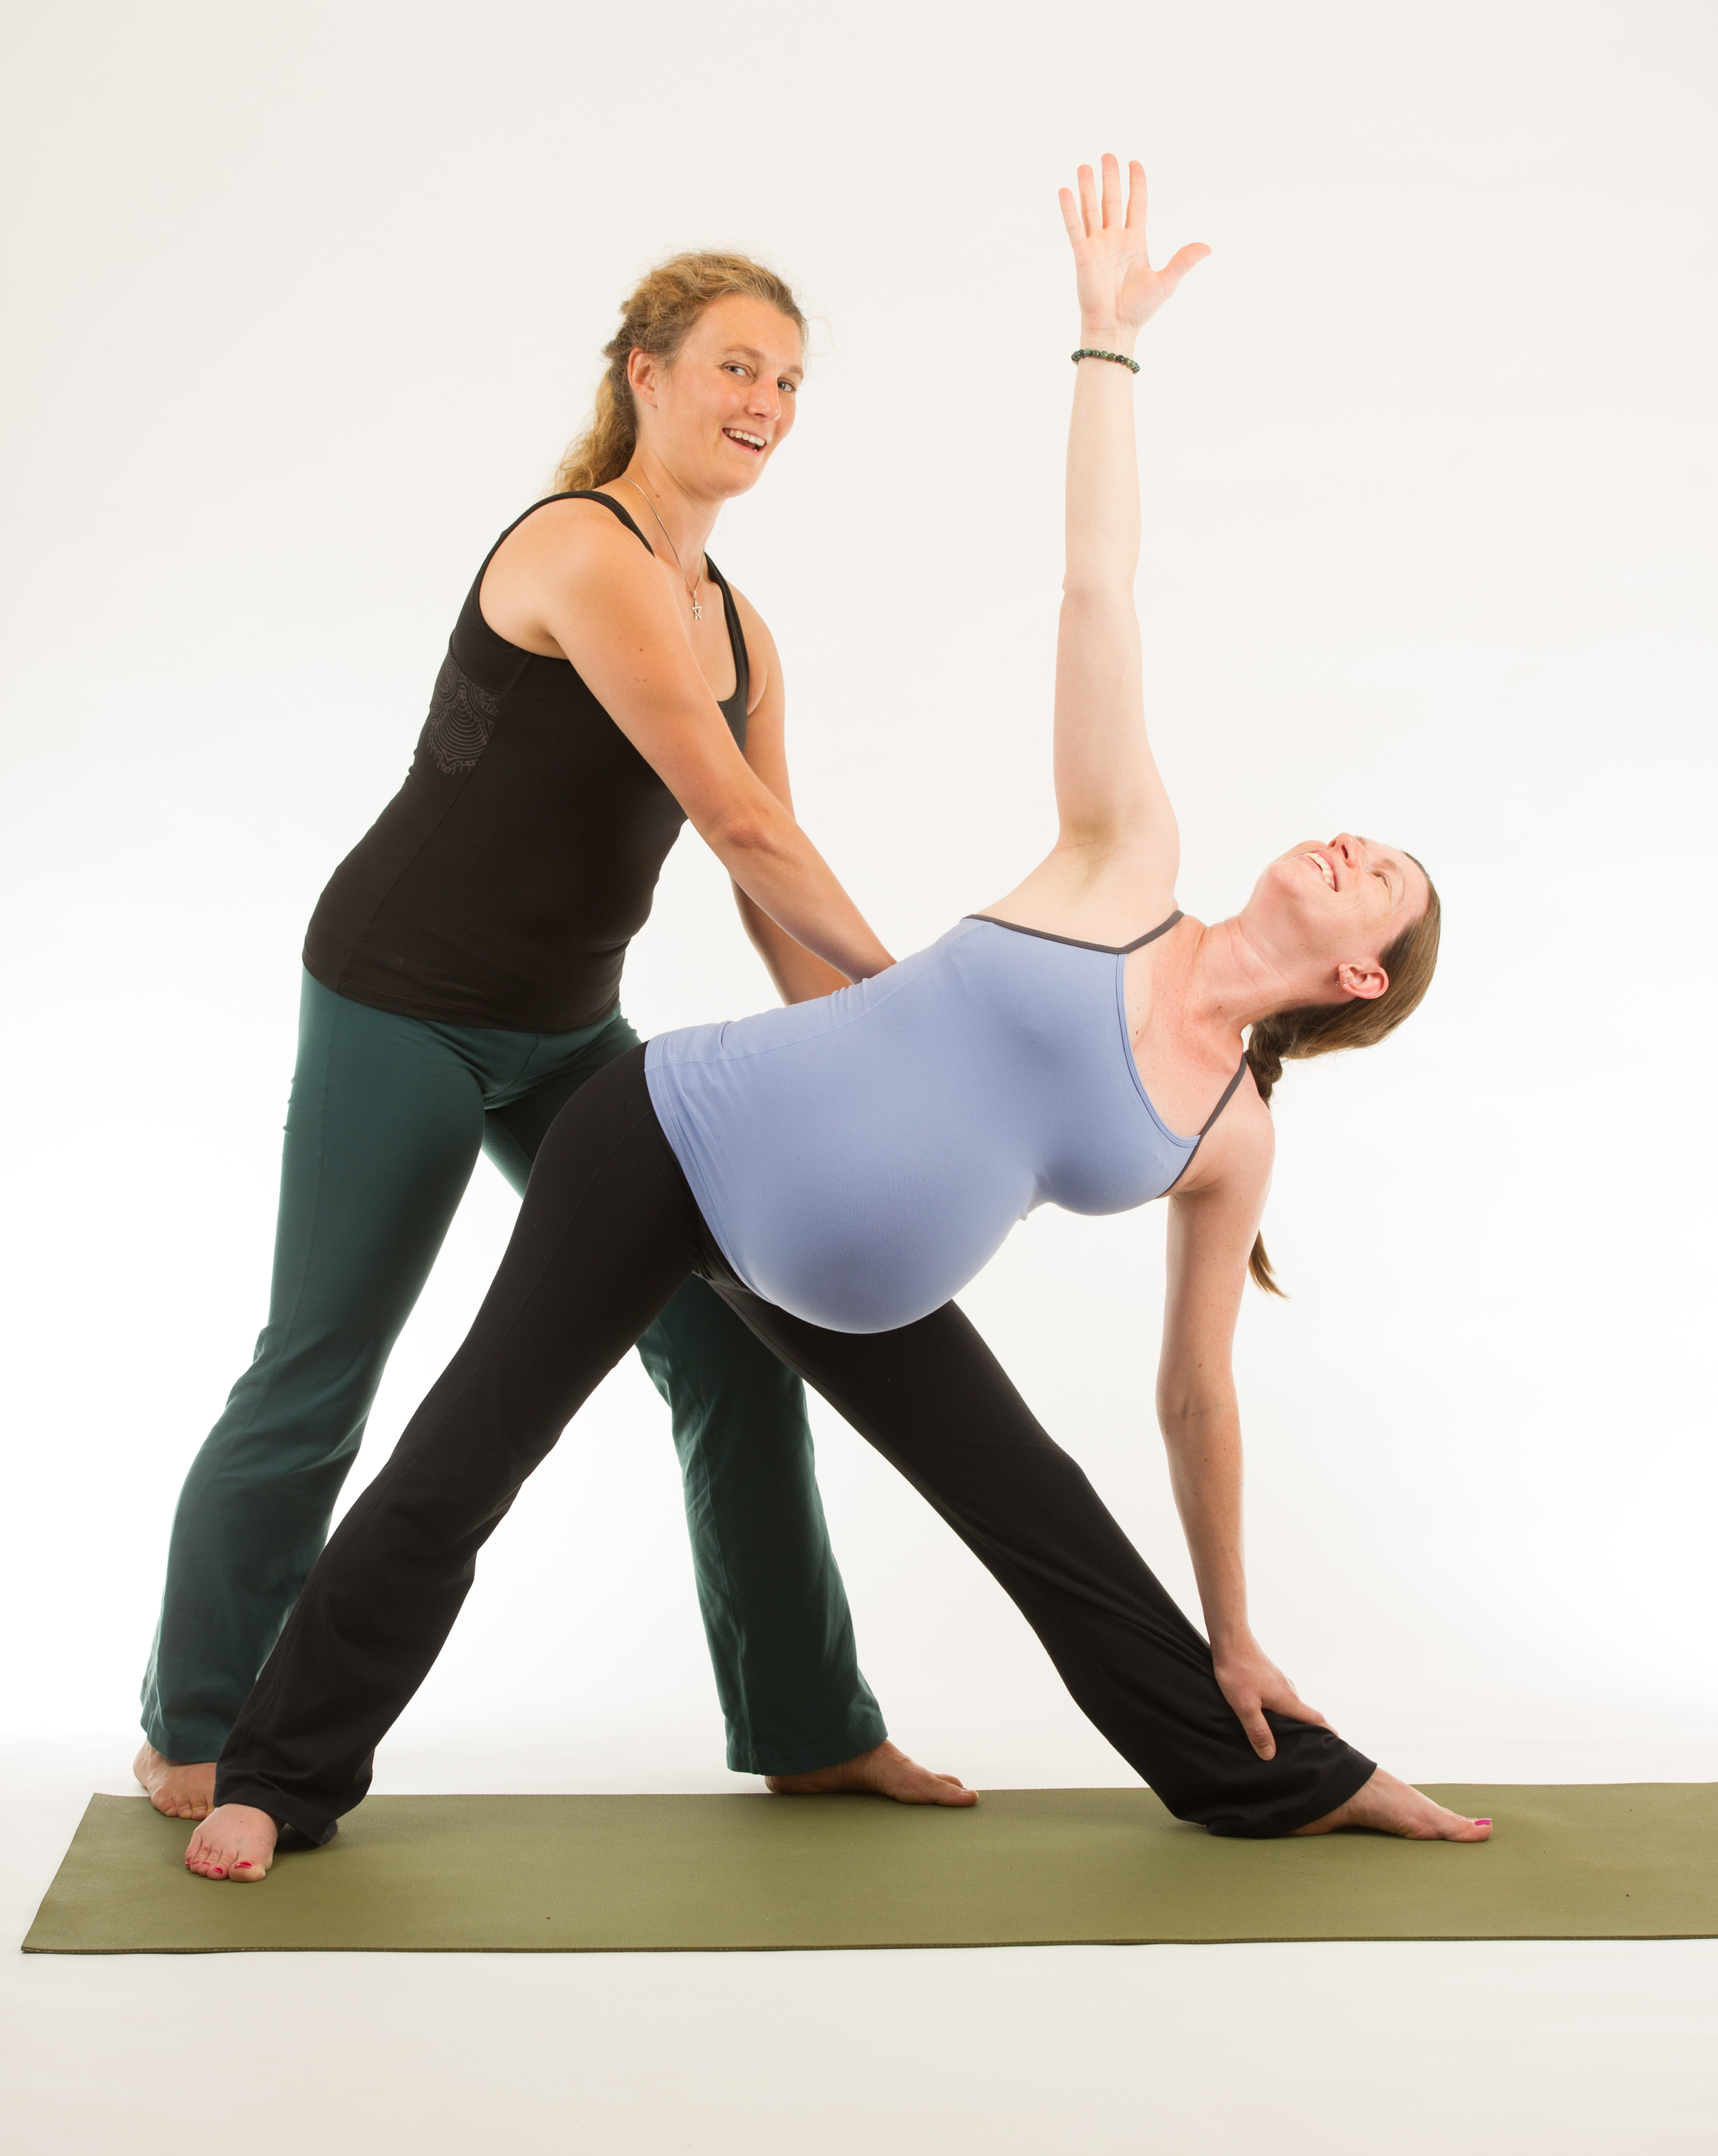 bec-conant-mommy-and-me-yoga